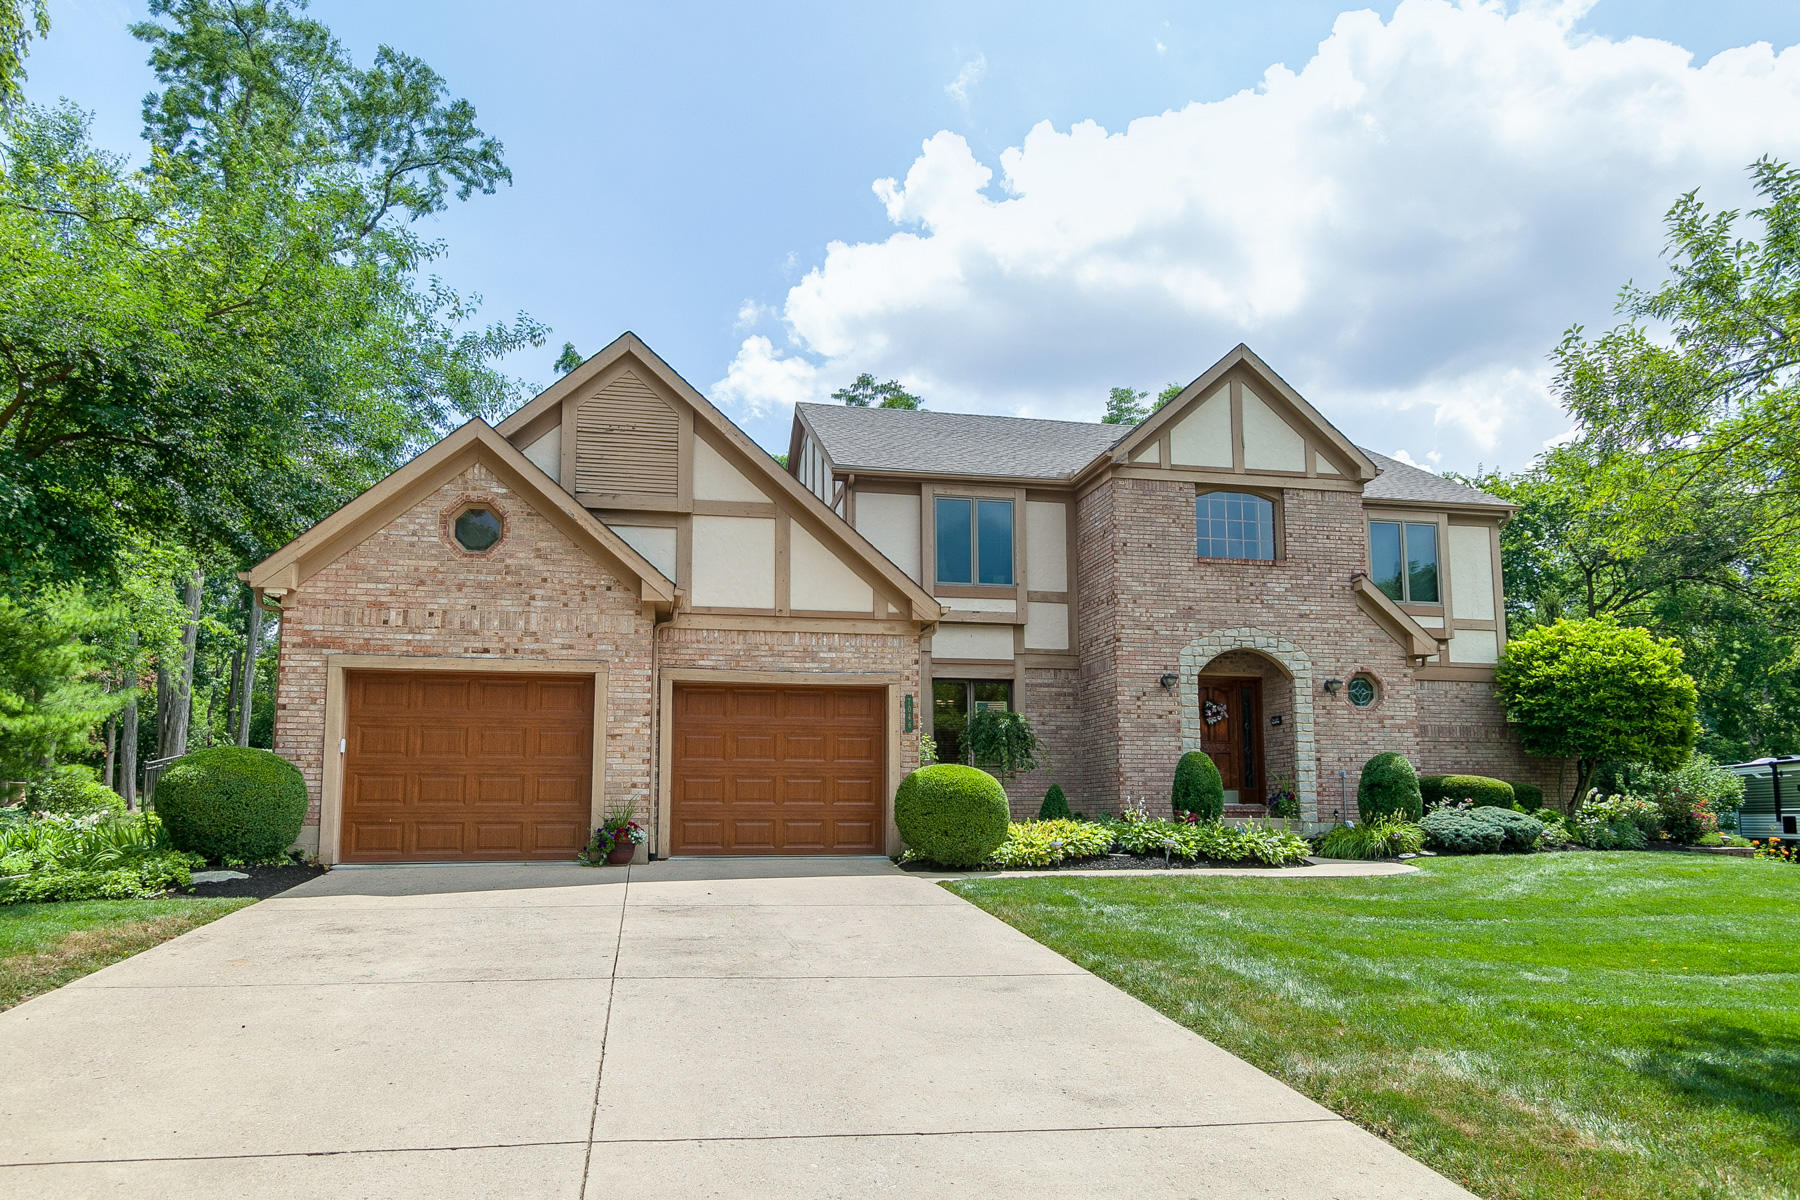 7046 Quaker Trace Court Property Photo - Dayton, OH real estate listing